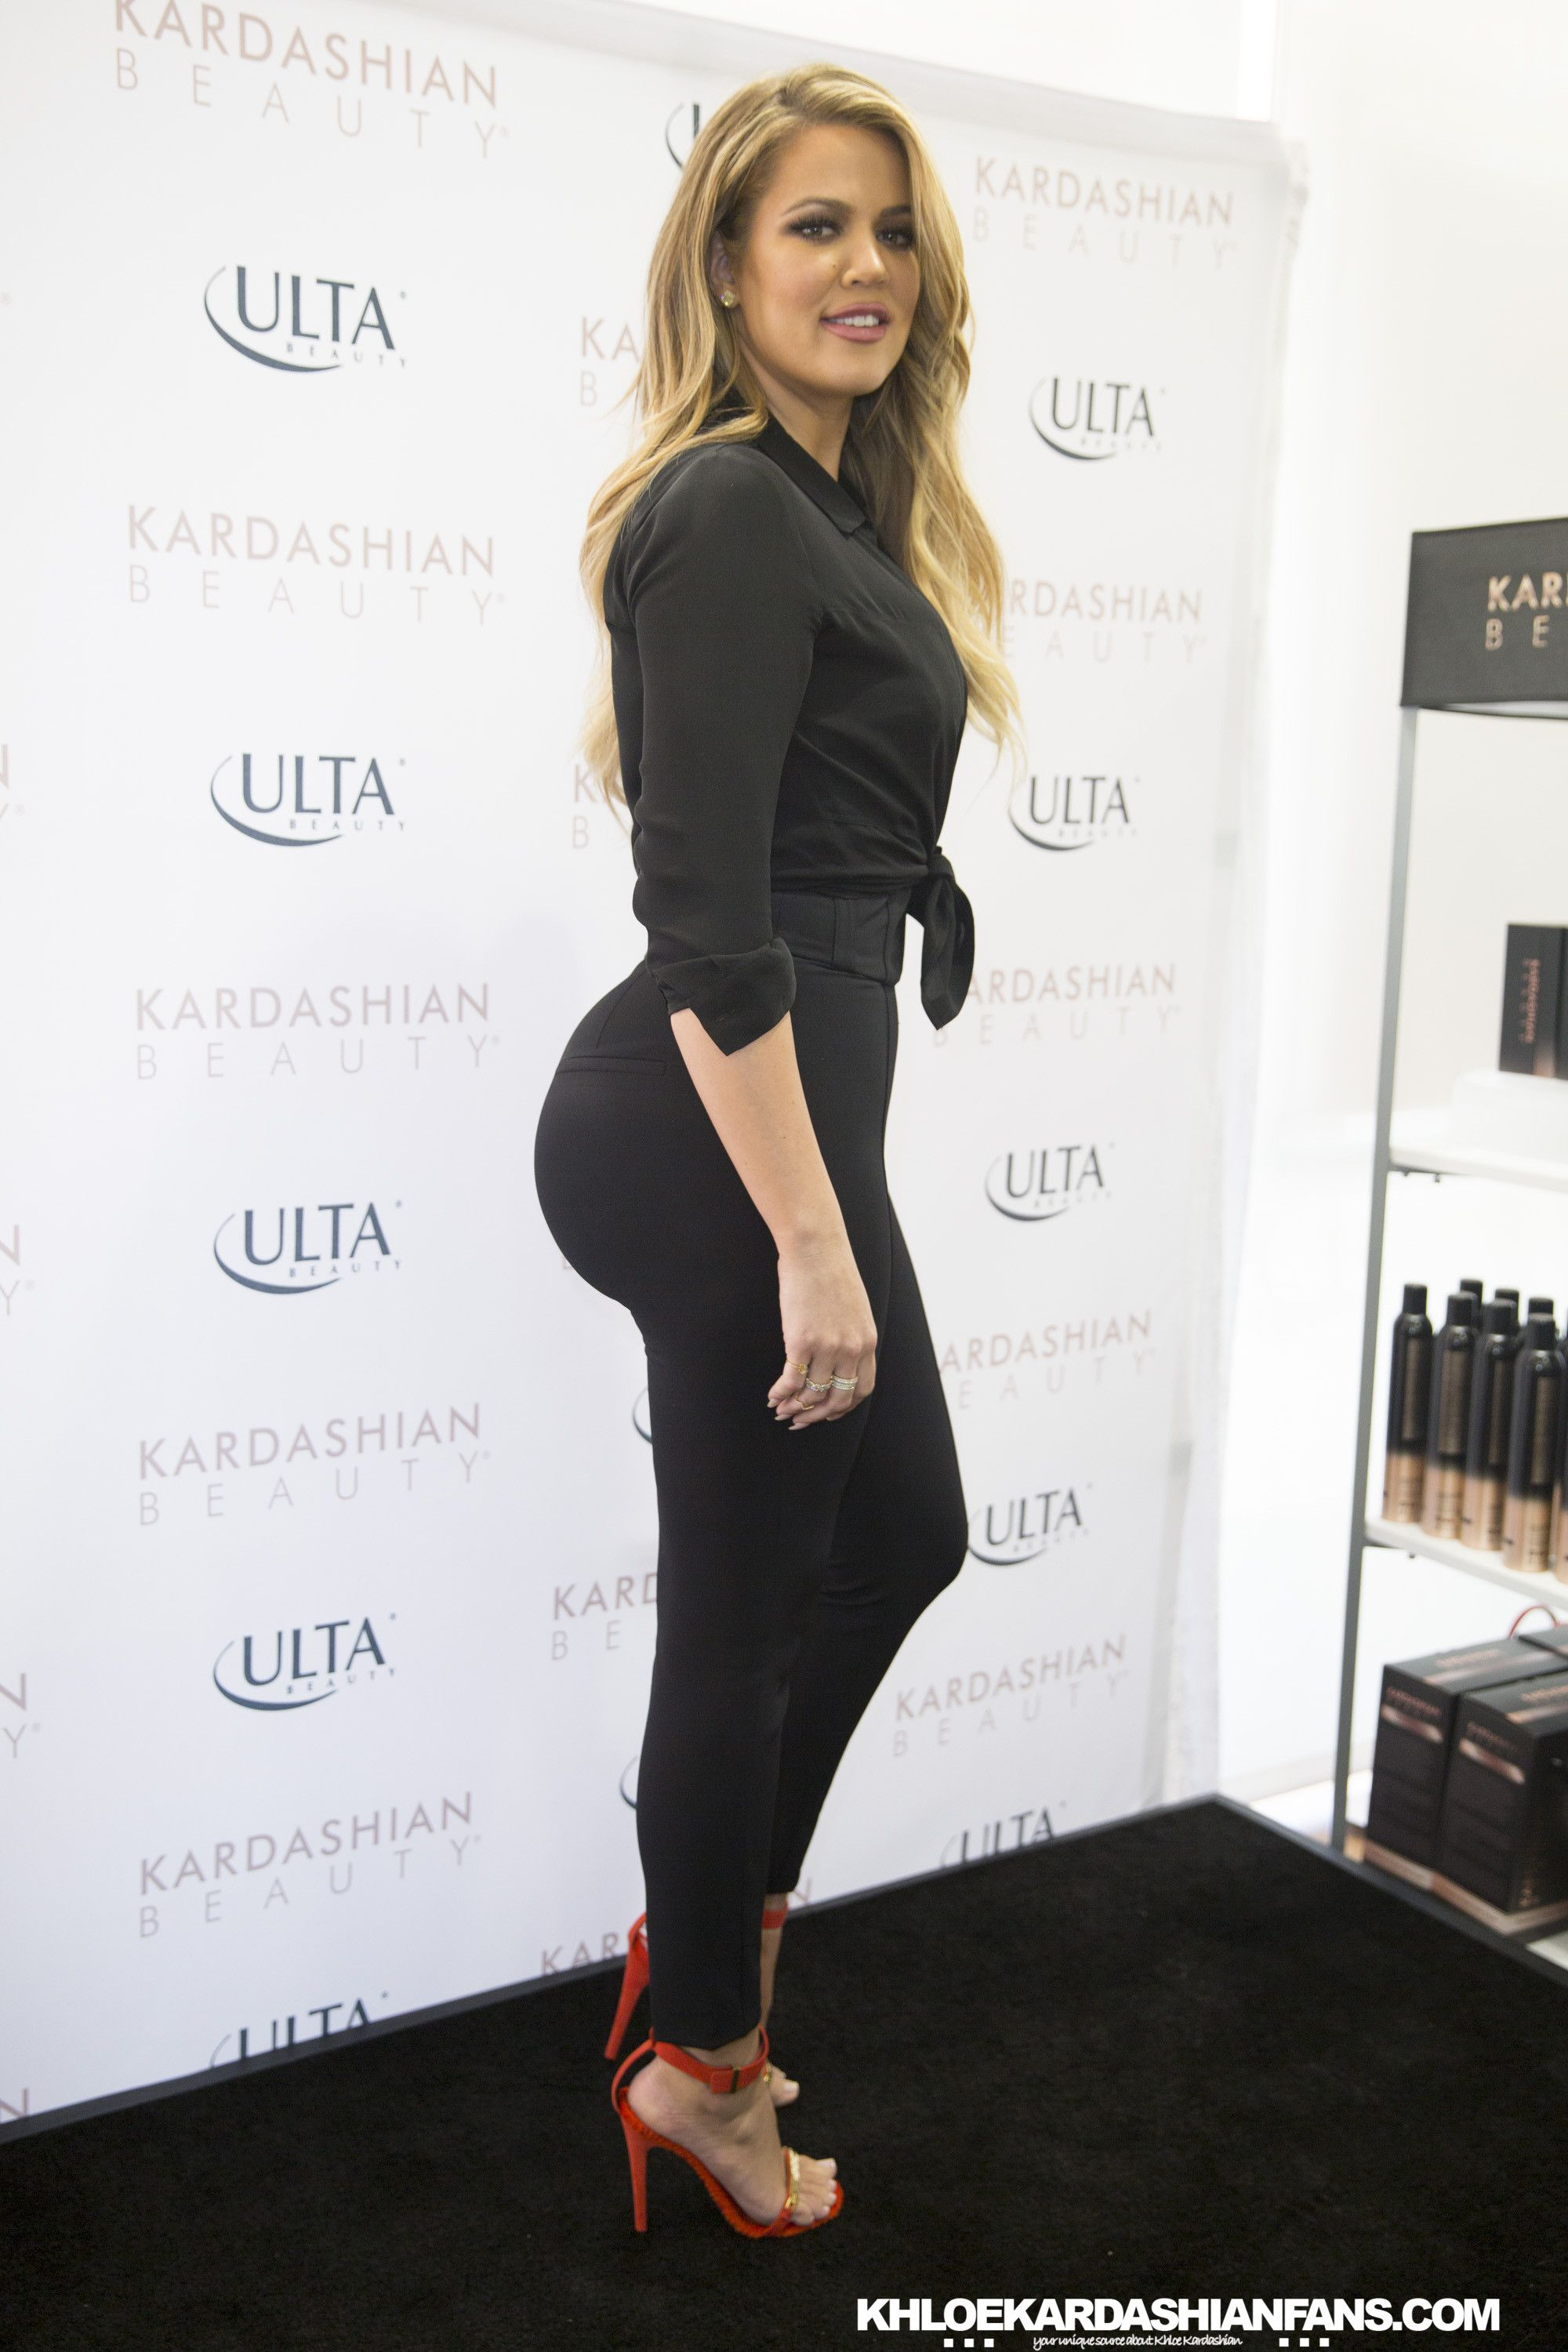 Khloé Kardashian Reveals Her Fave Butt Exercises, So You Can Get an Ass LikeKhlo